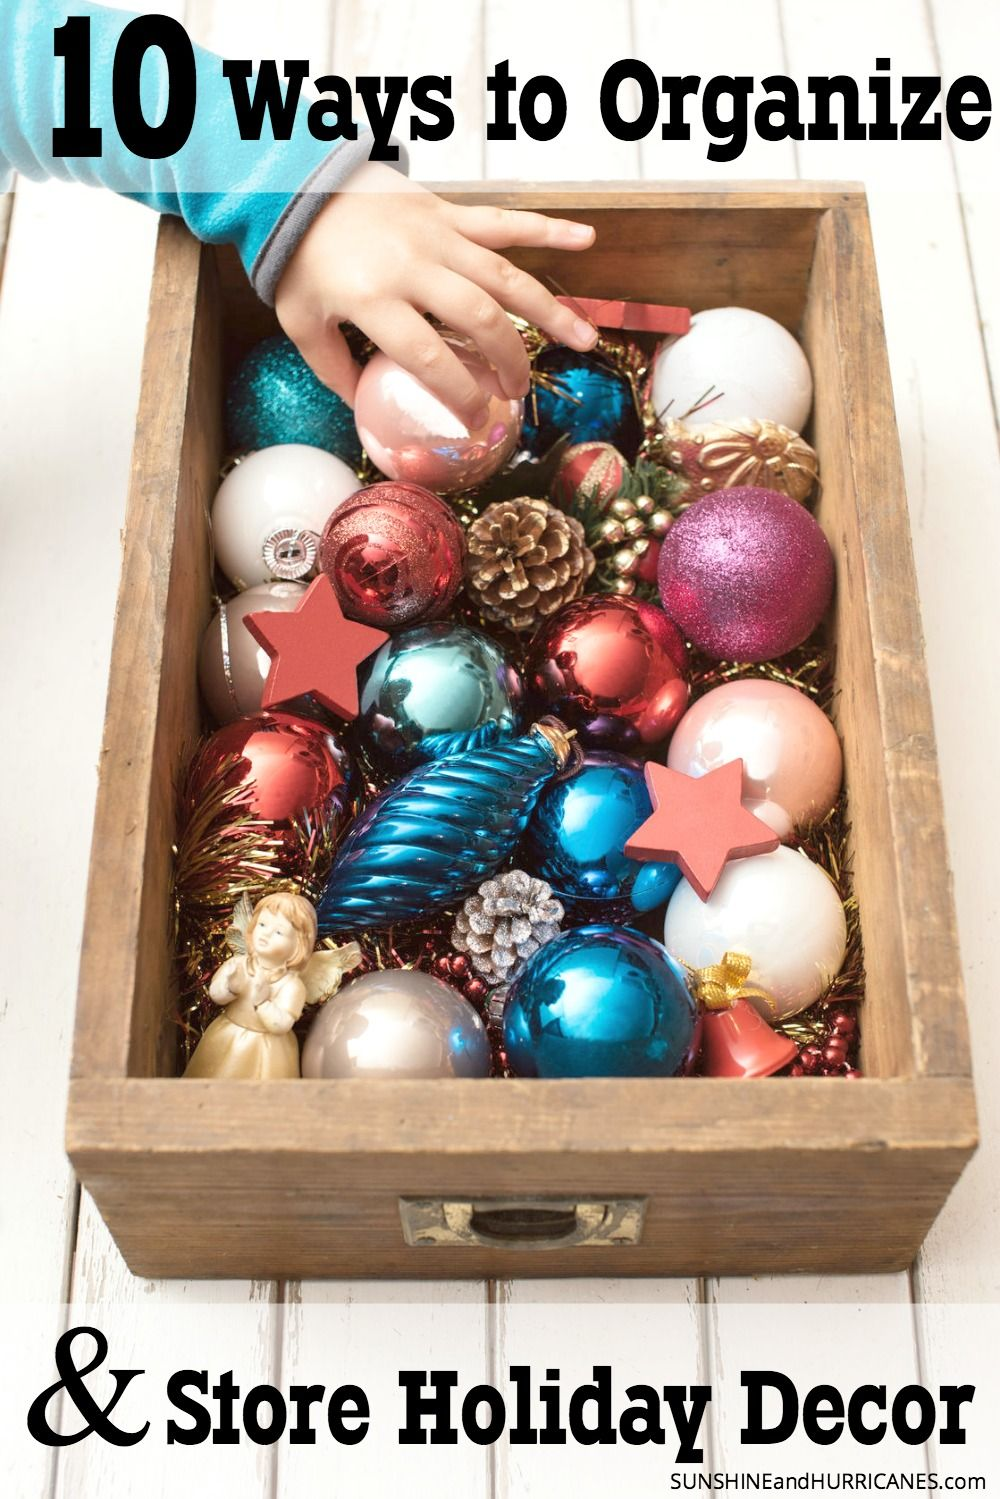 Looking For Solutions To Get Those Precious Kid Made Ornaments And Other Holiday Decorations Organized Safe There Are Lots Of Affordable Easy